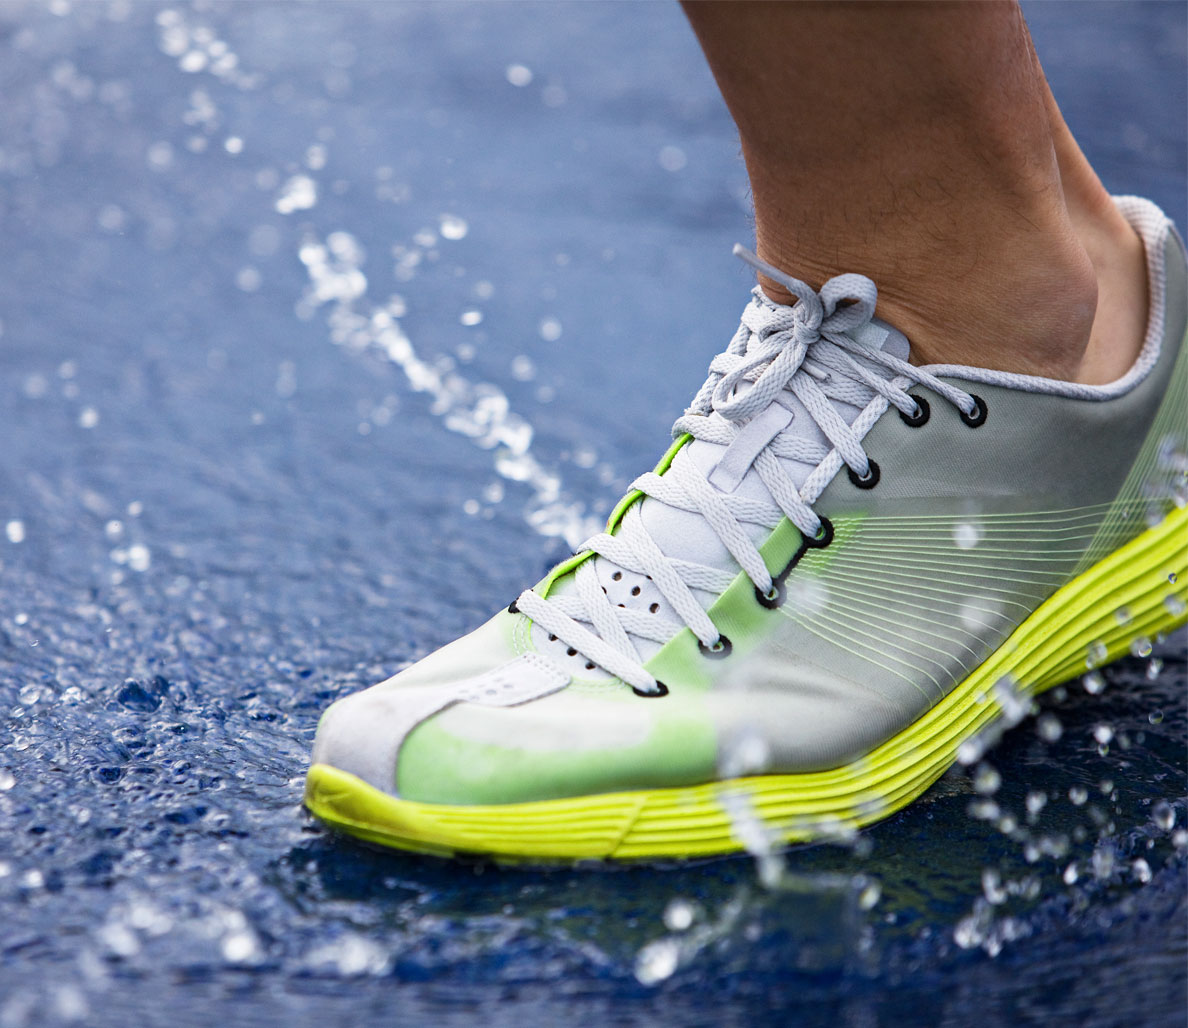 Whow Often Should You Change Your Running Shoes